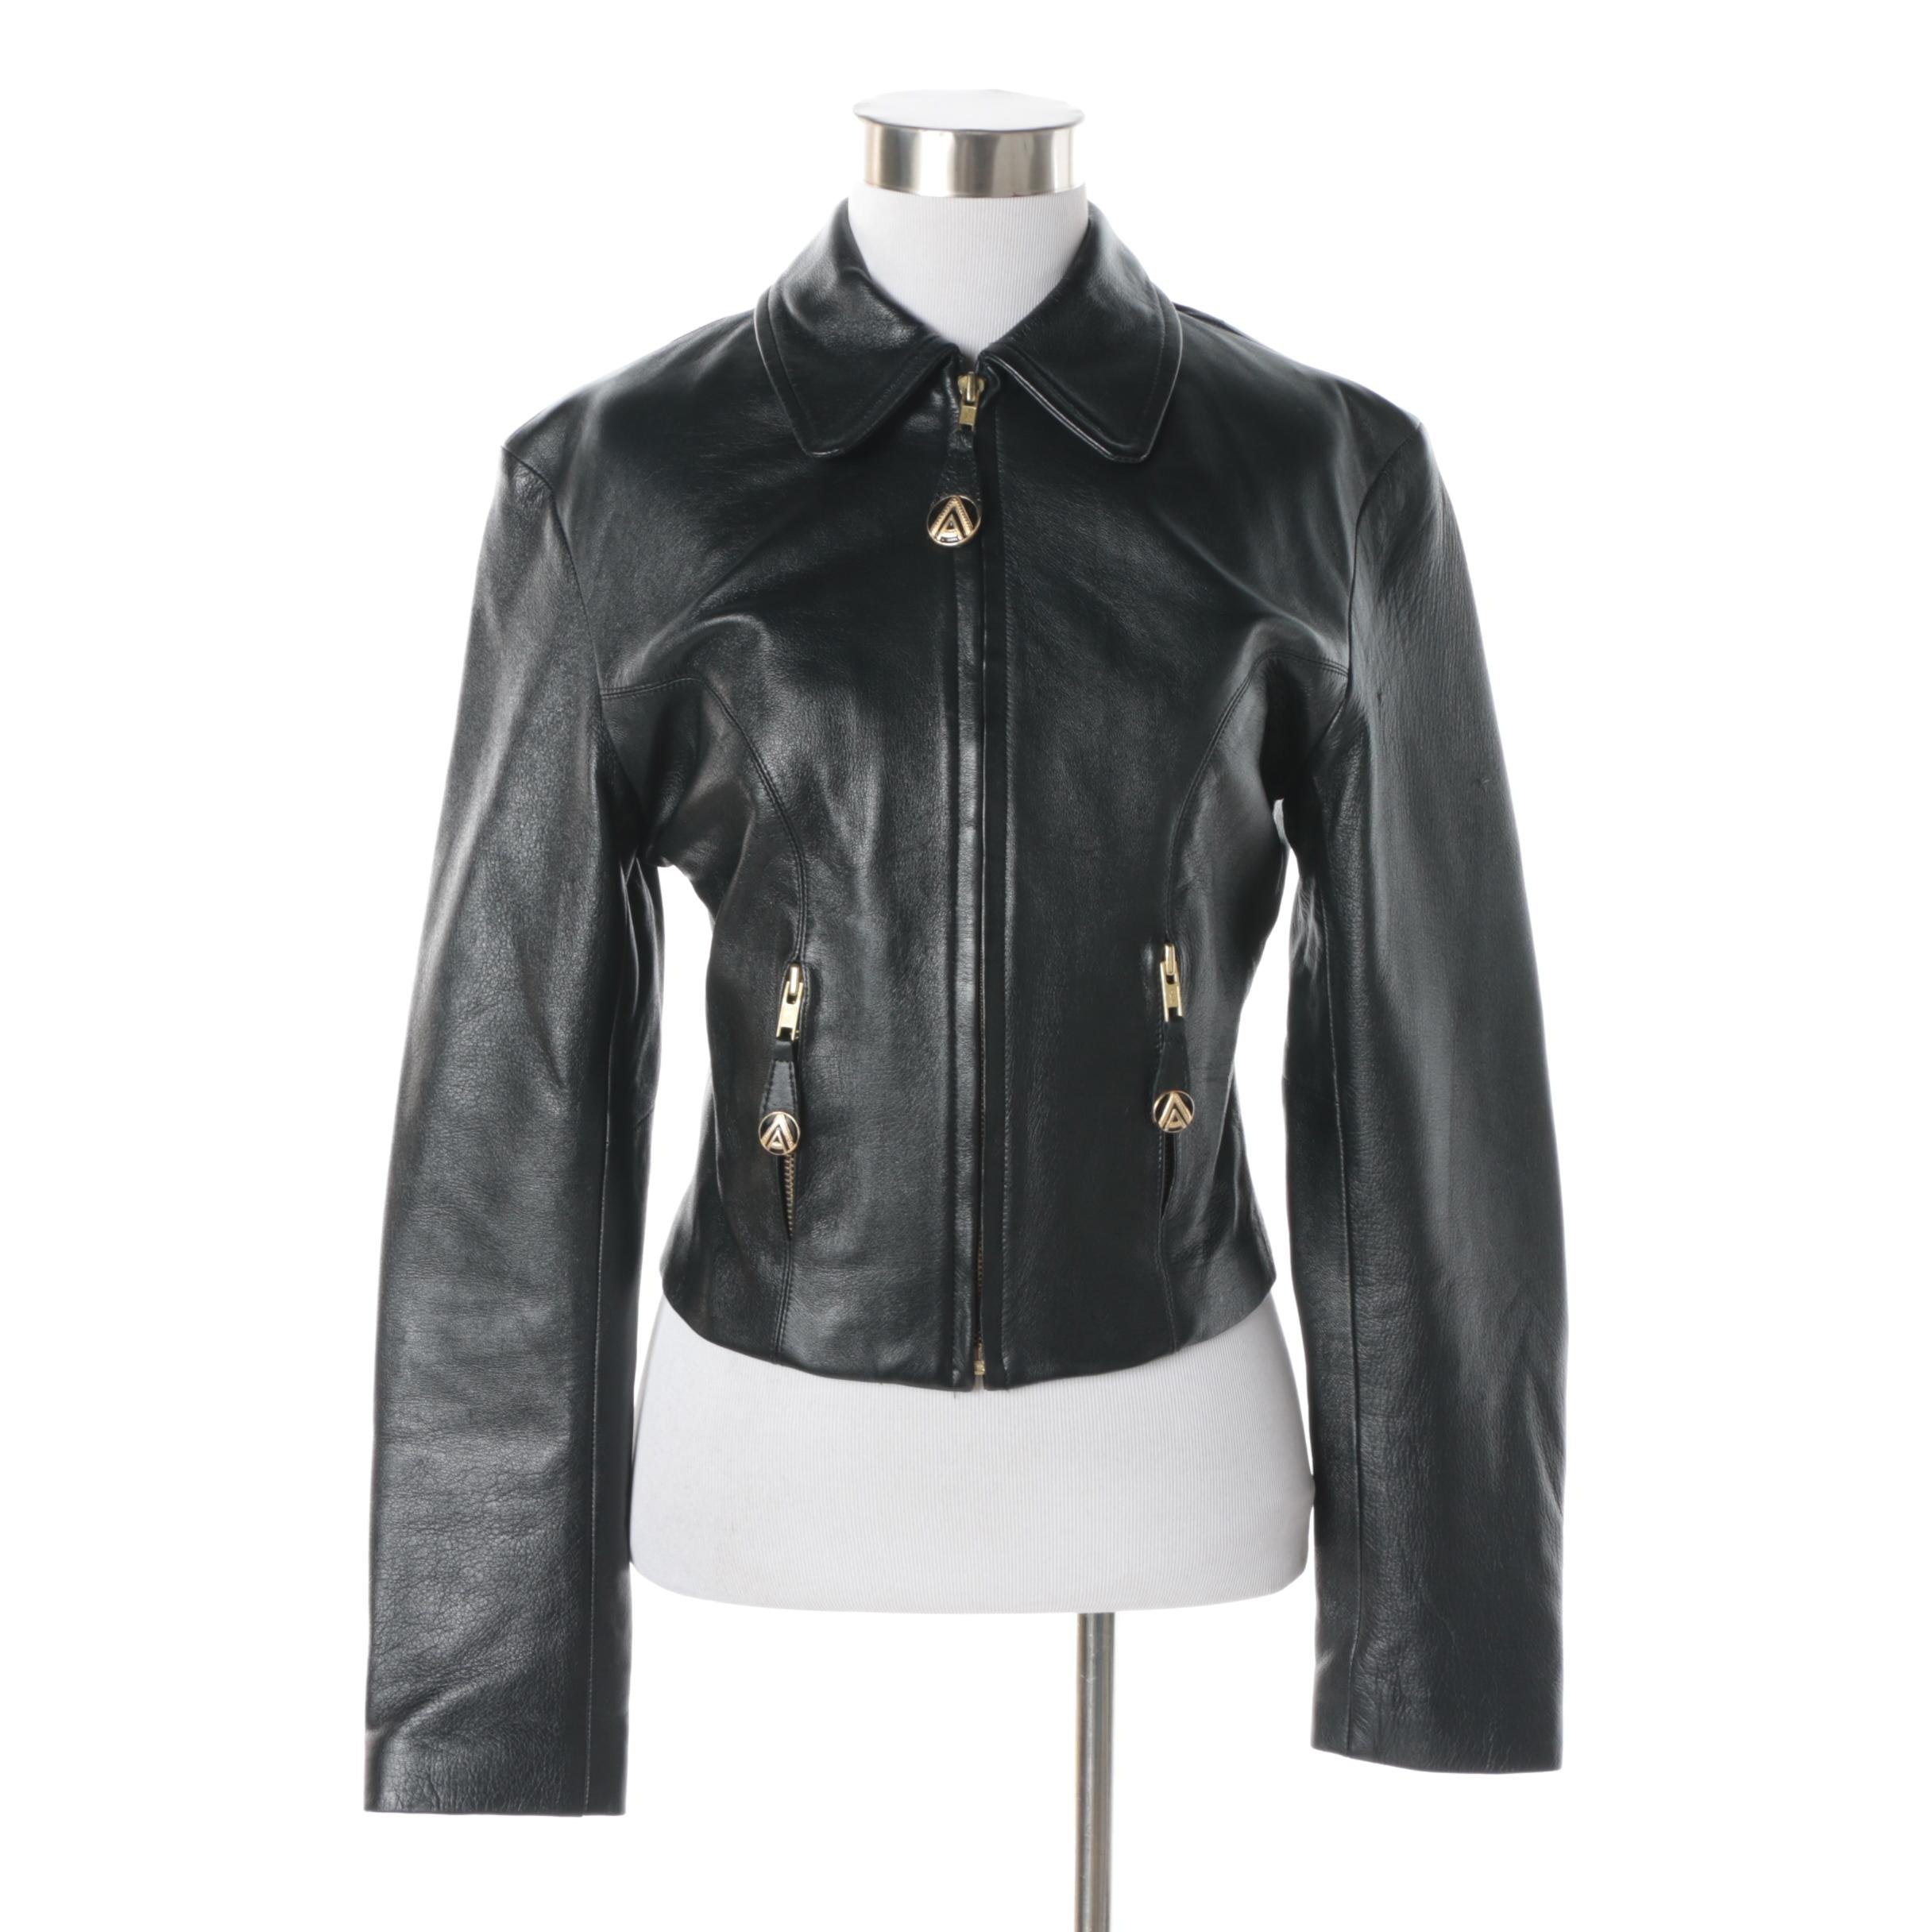 Women's Caché Black Leather Jacket